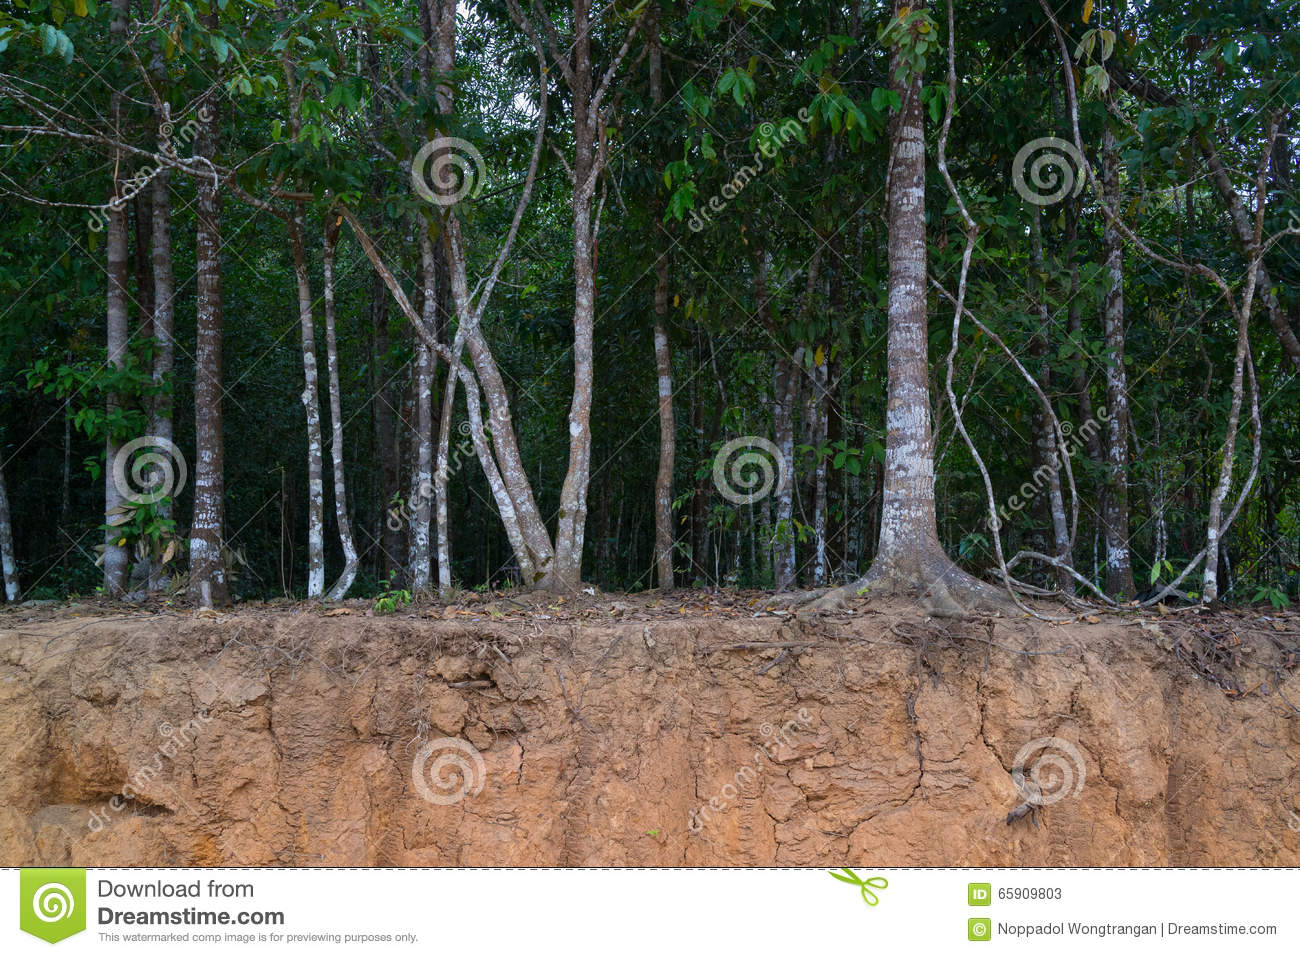 Trees on small cliff showing their roots